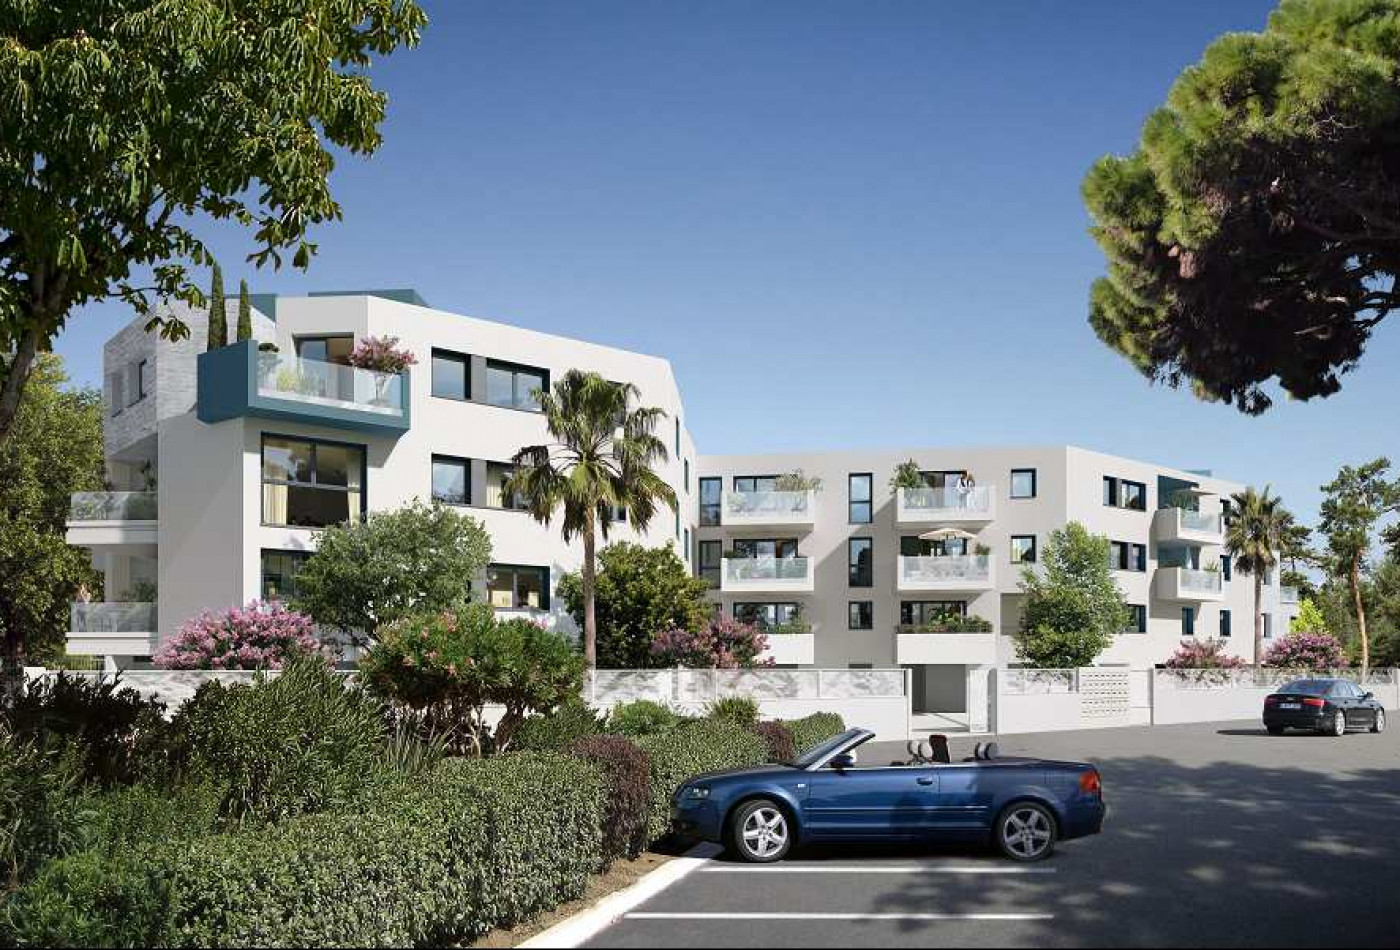 Appartement en vente carnon plage rf340134591 agence for Appartement agence